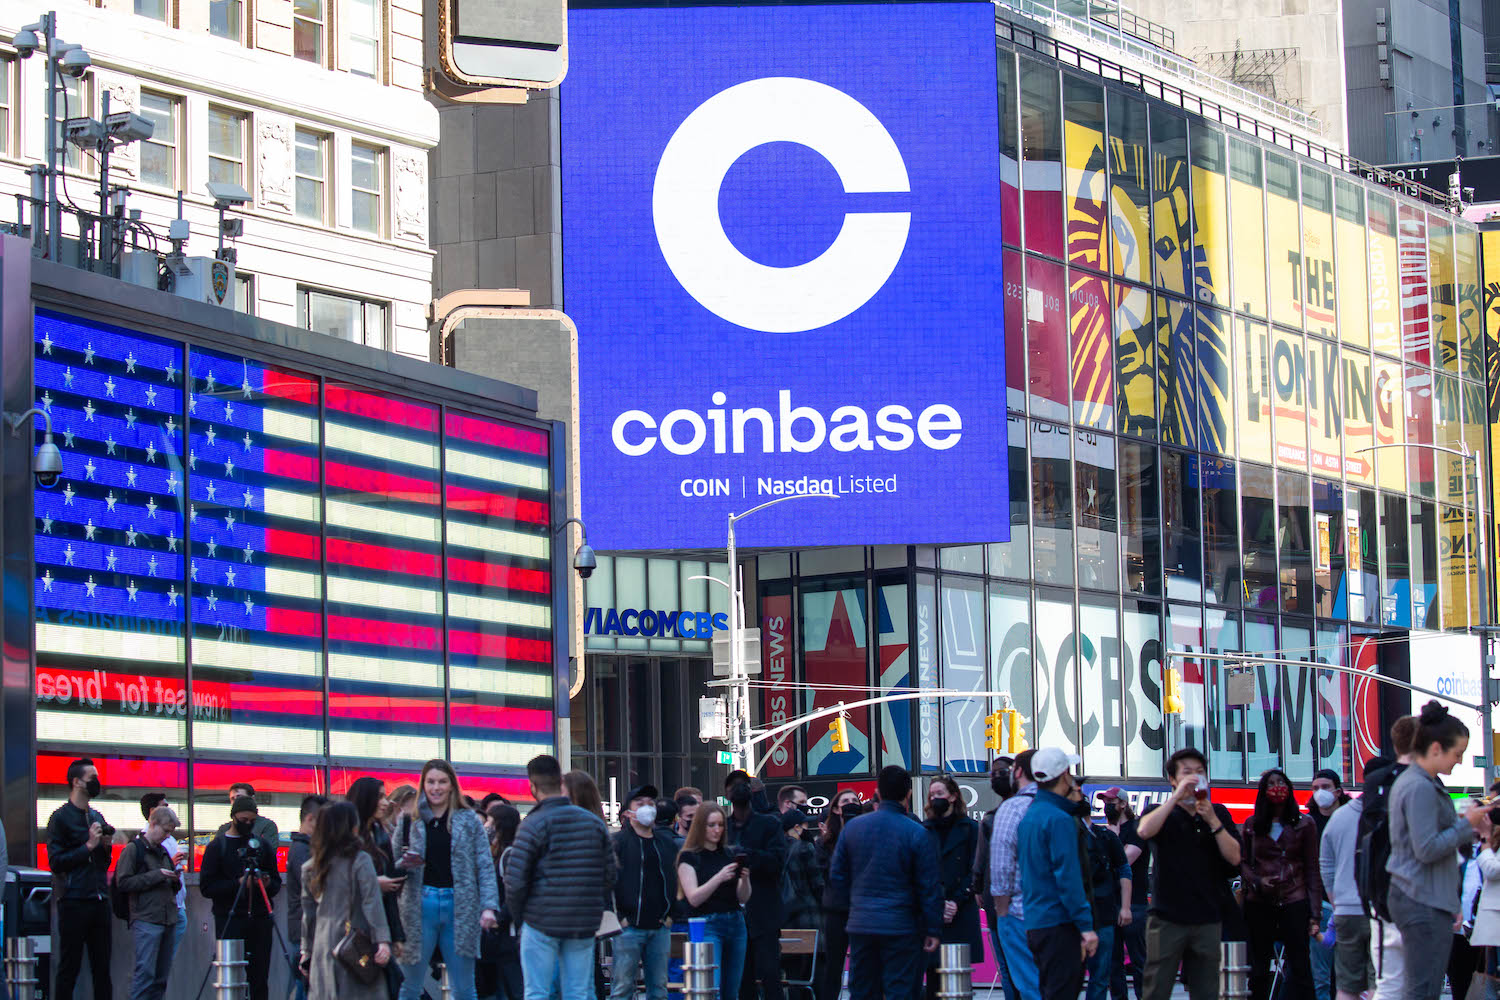 Coinbase COIN Stock Hit With 'Sell' Rating by Investment Bank Raymond James